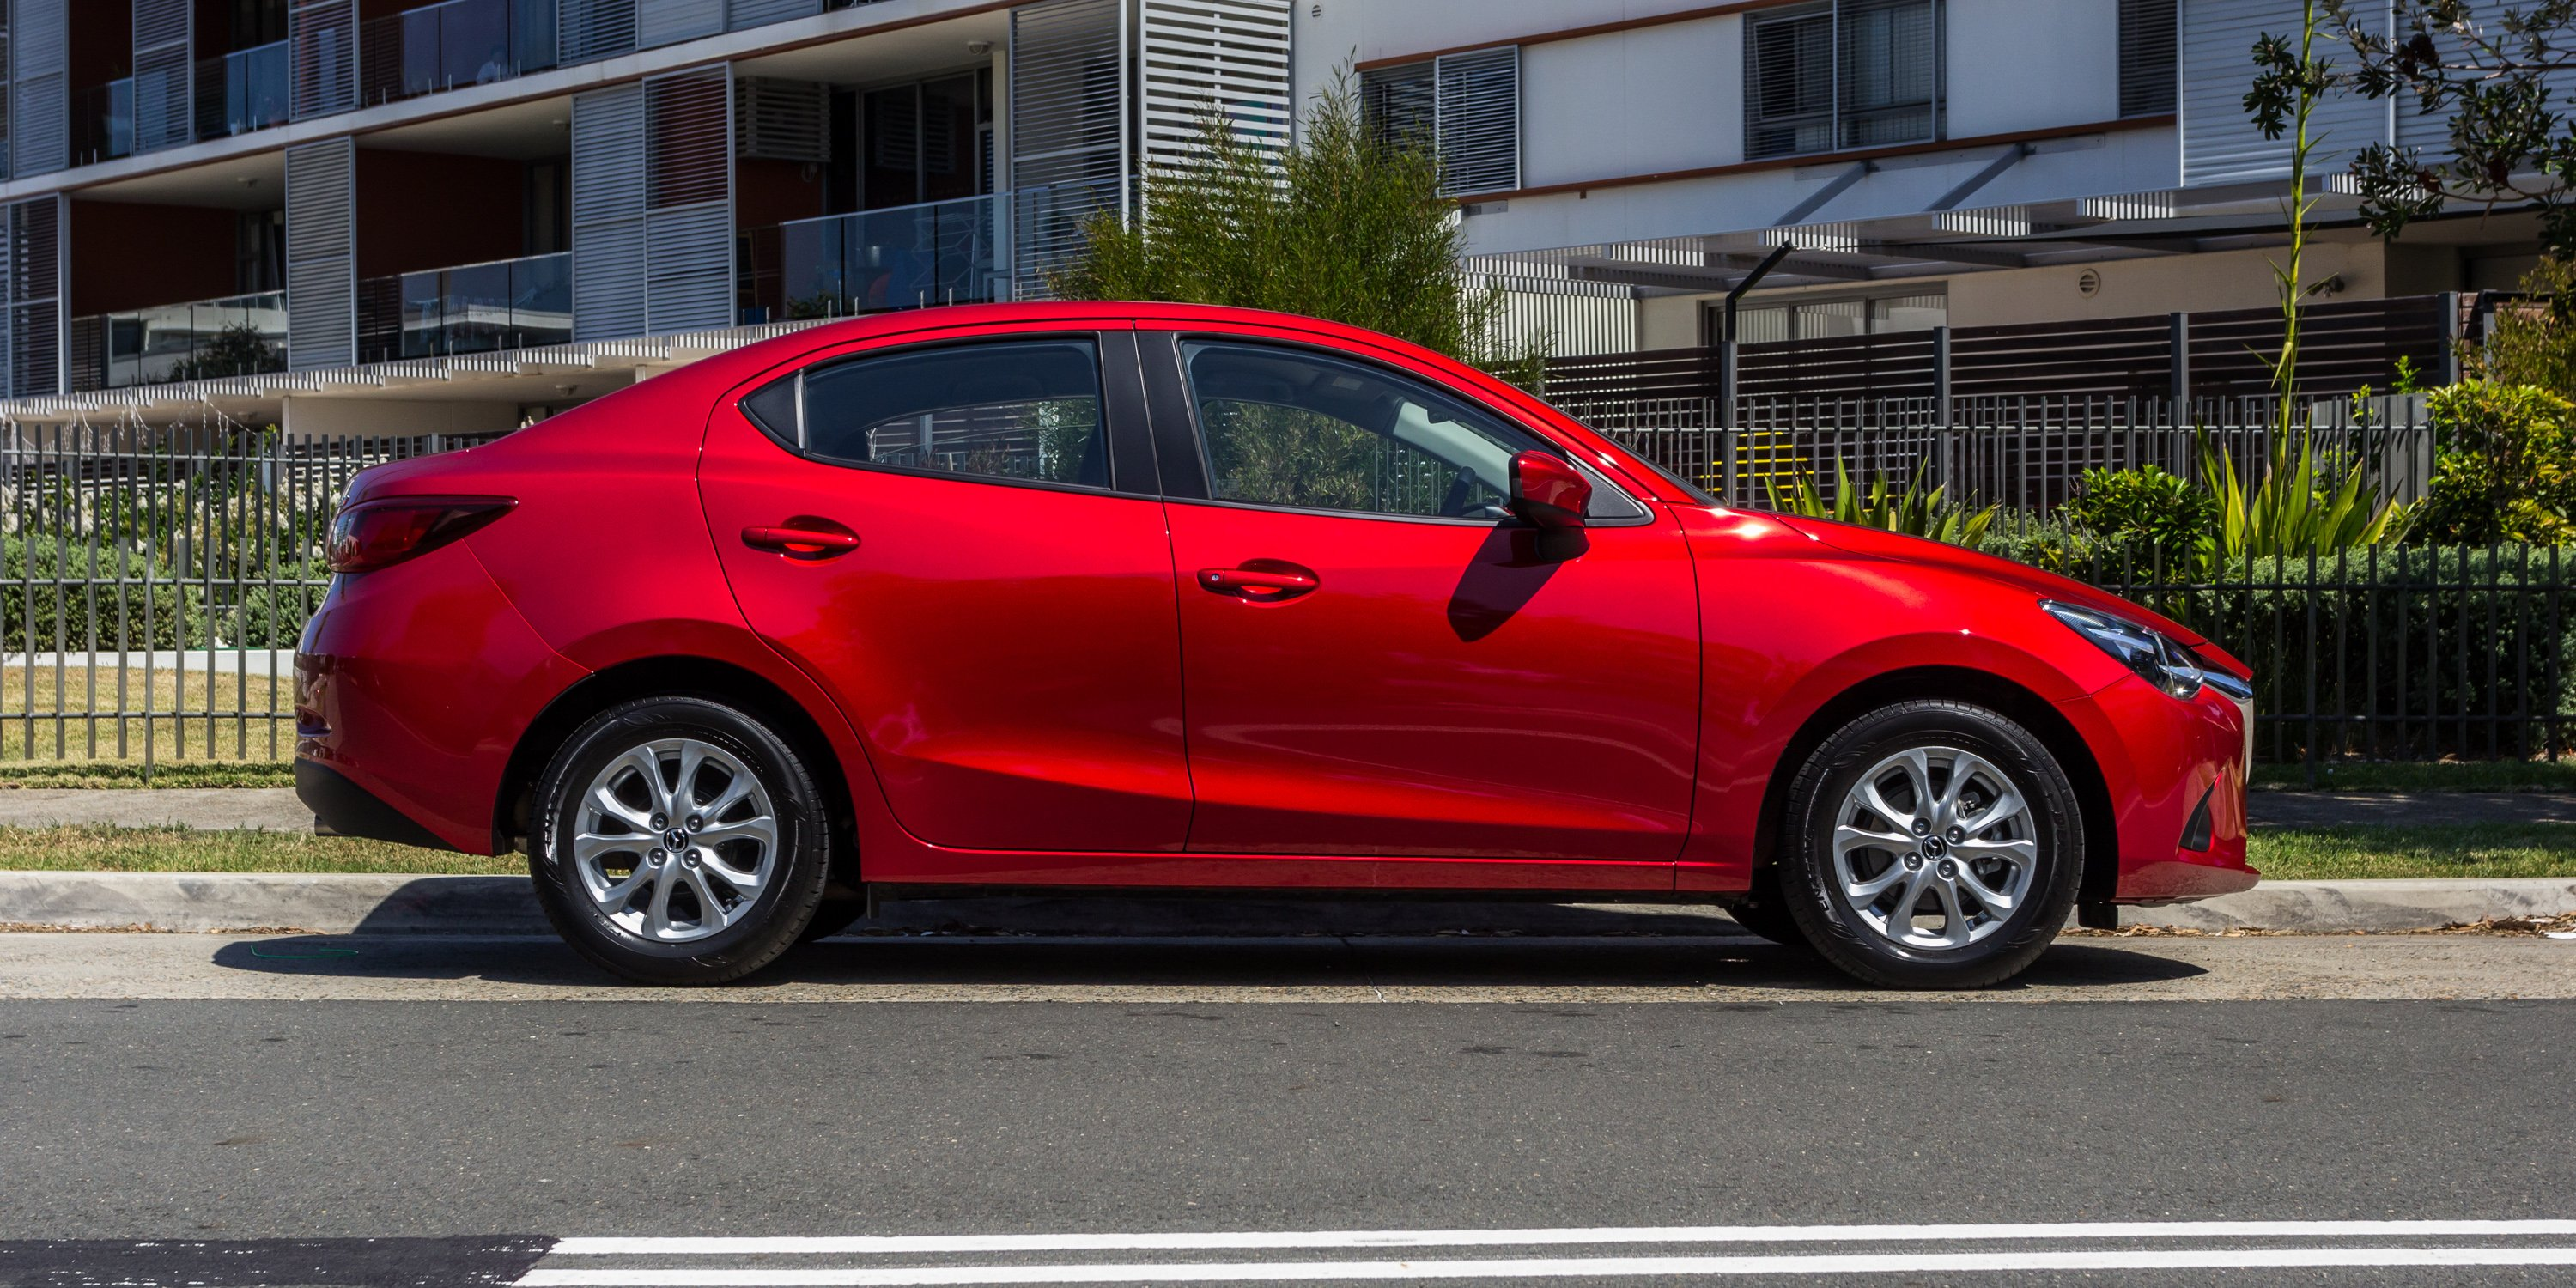 2016 mazda 3 neo hatch review caradvice autos post. Black Bedroom Furniture Sets. Home Design Ideas